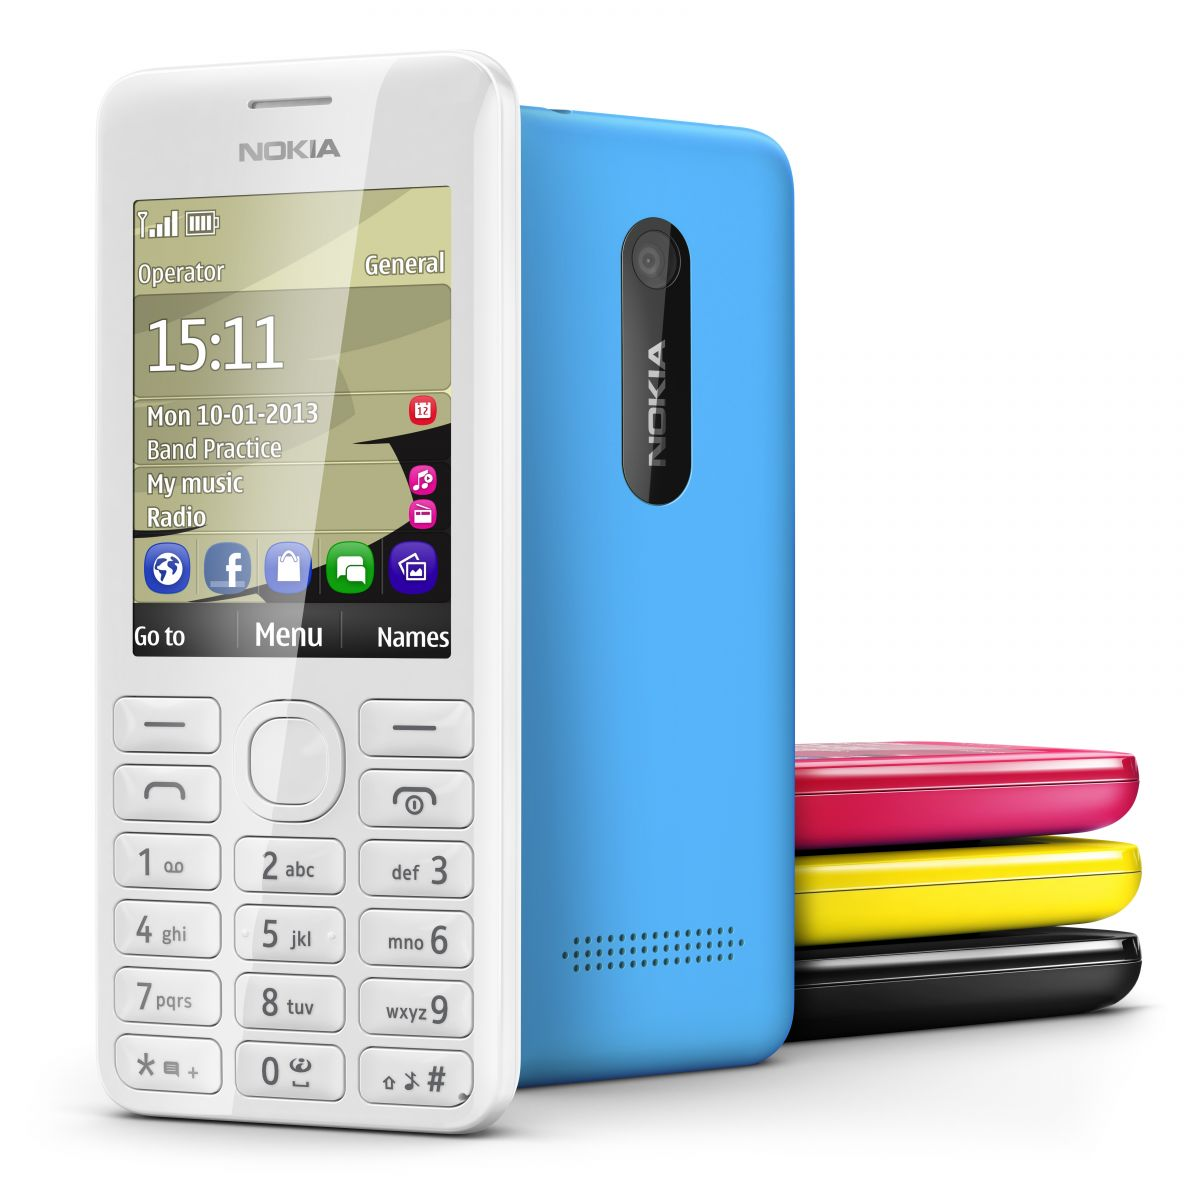 Nokia, Nokia 206, Mountain Phone, Long Batt Life